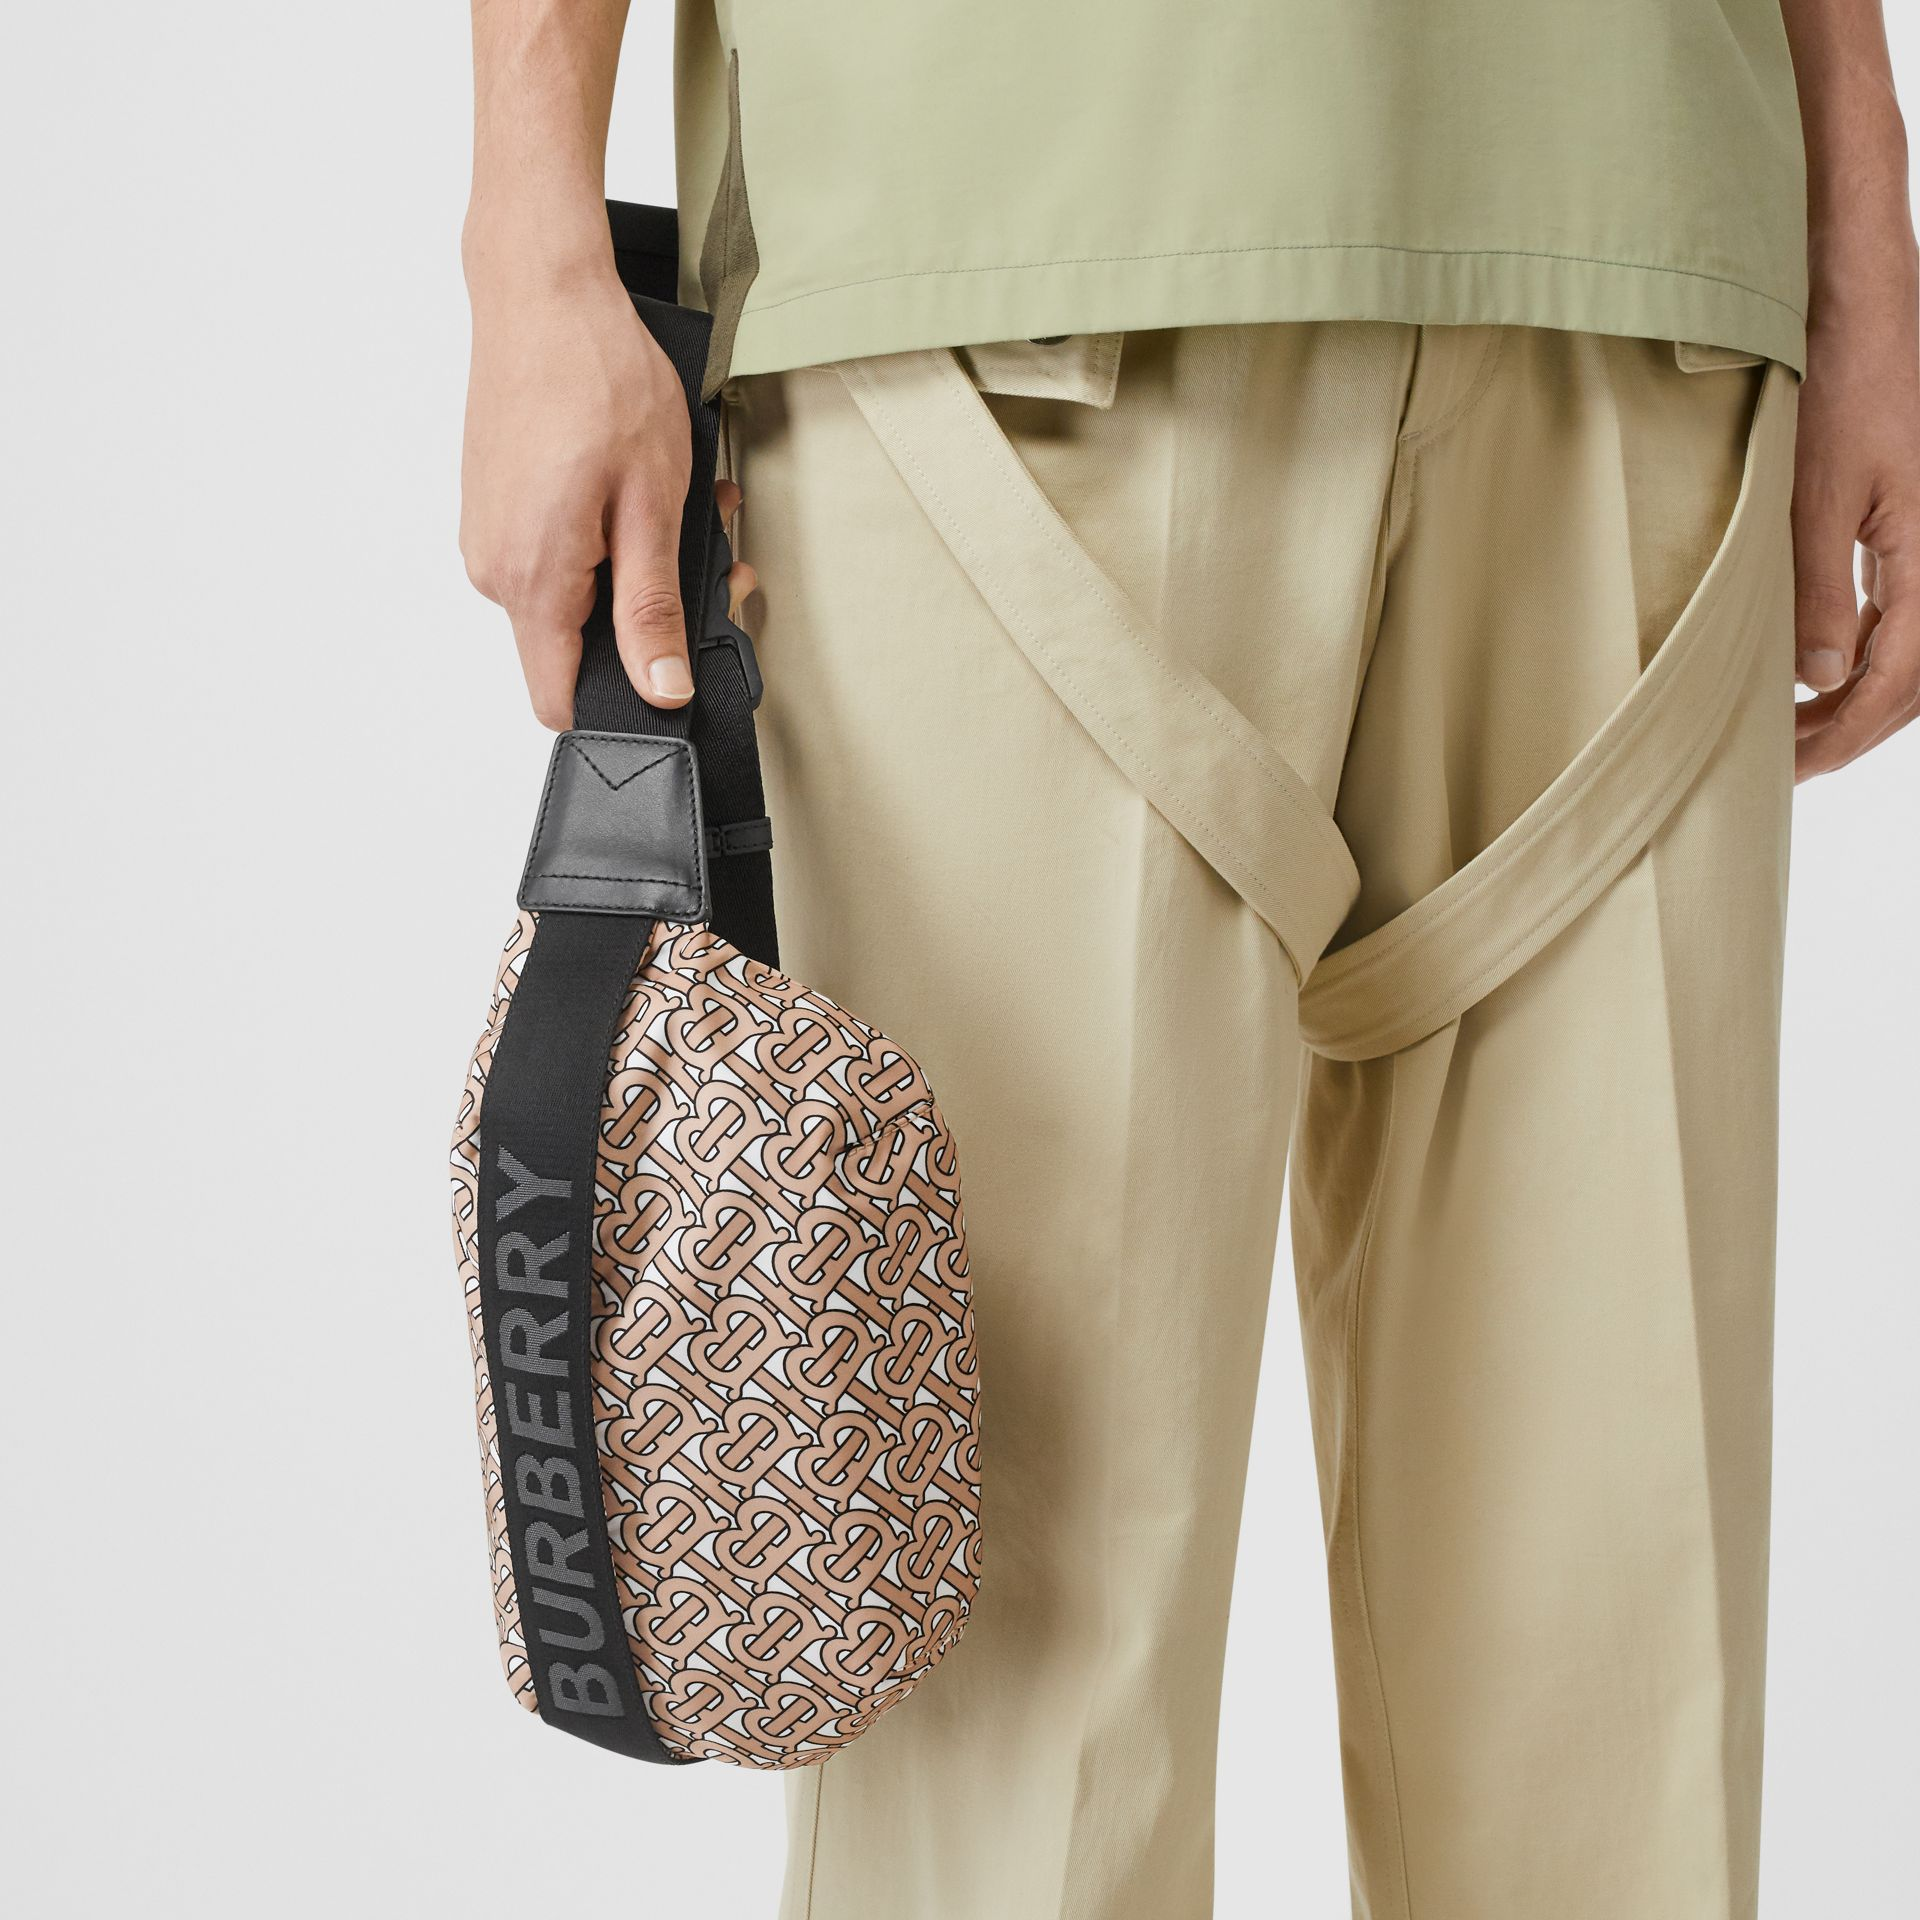 Medium Monogram Print Bum Bag in Beige | Burberry Australia - gallery image 3